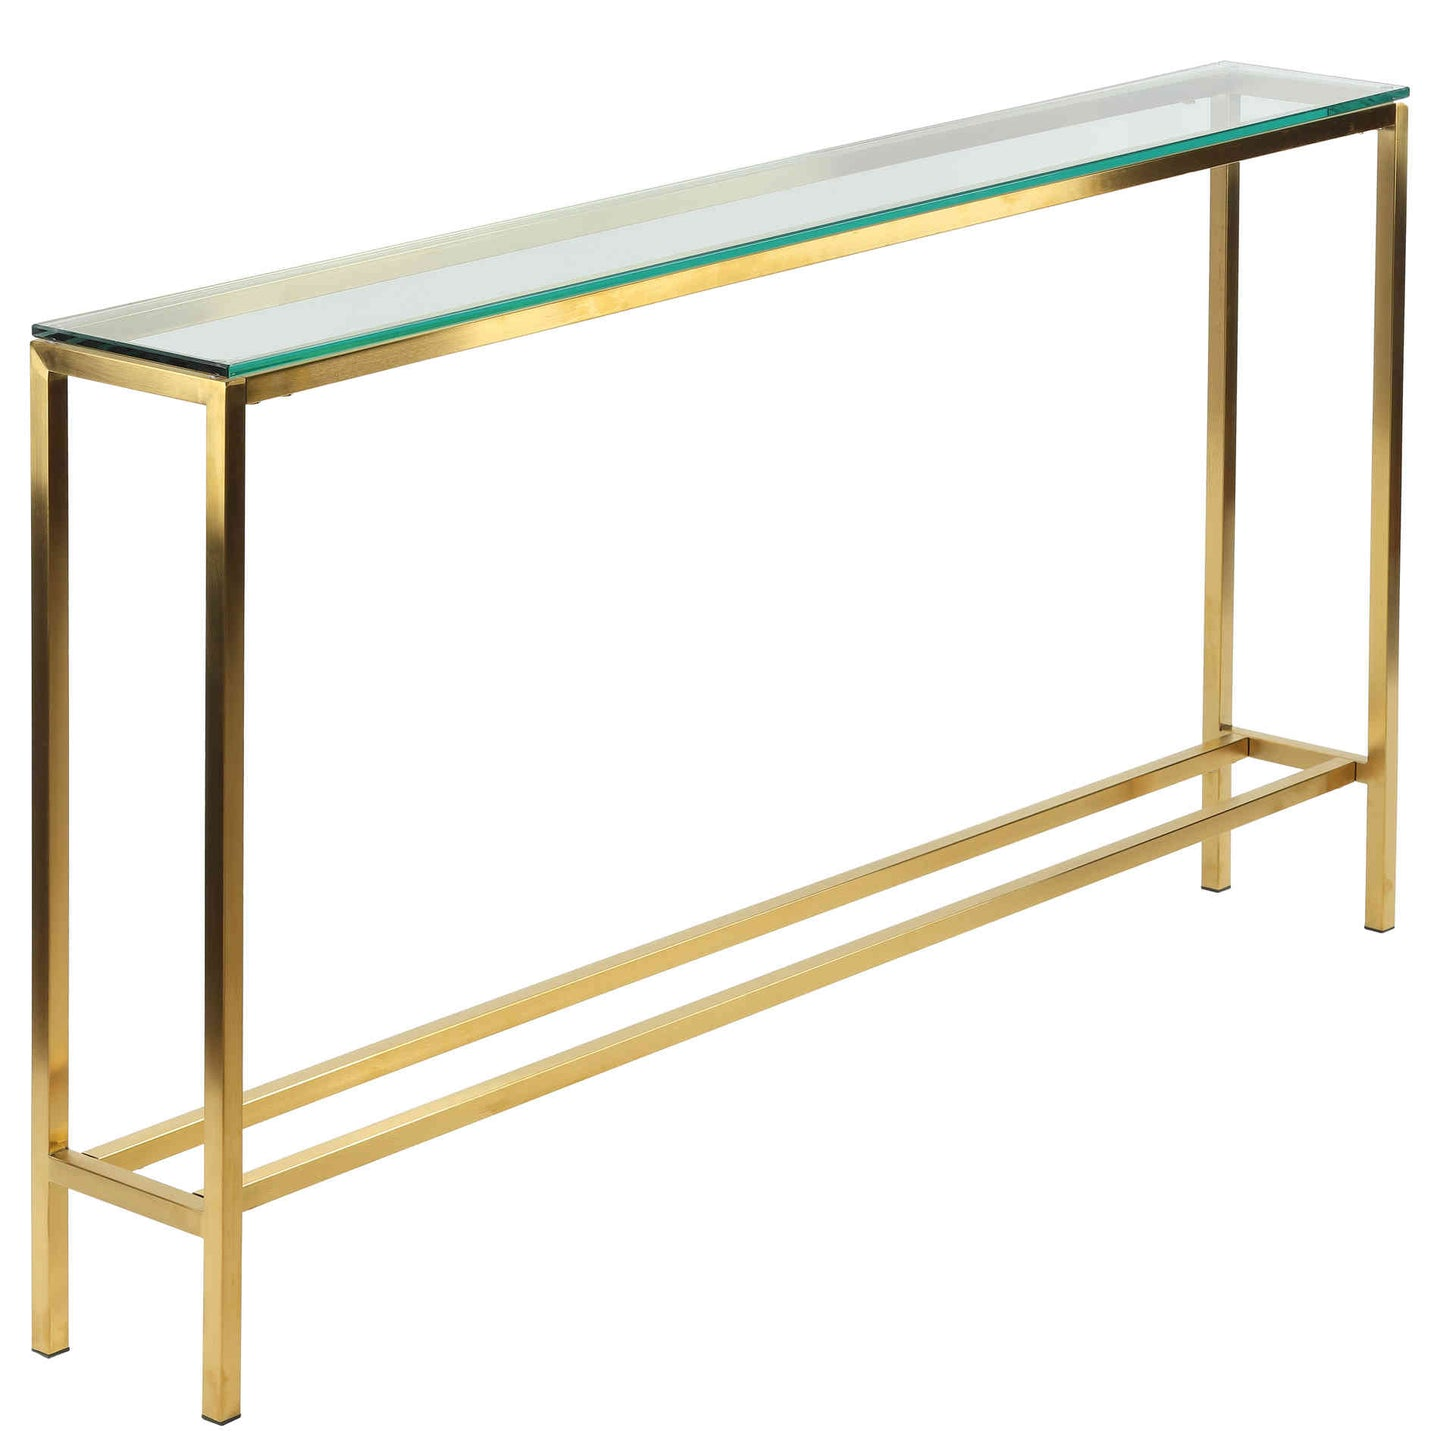 Cortesi Home Juan Console Table, Brushed Gold Color with Clear 10mm Glass, Skinny 56